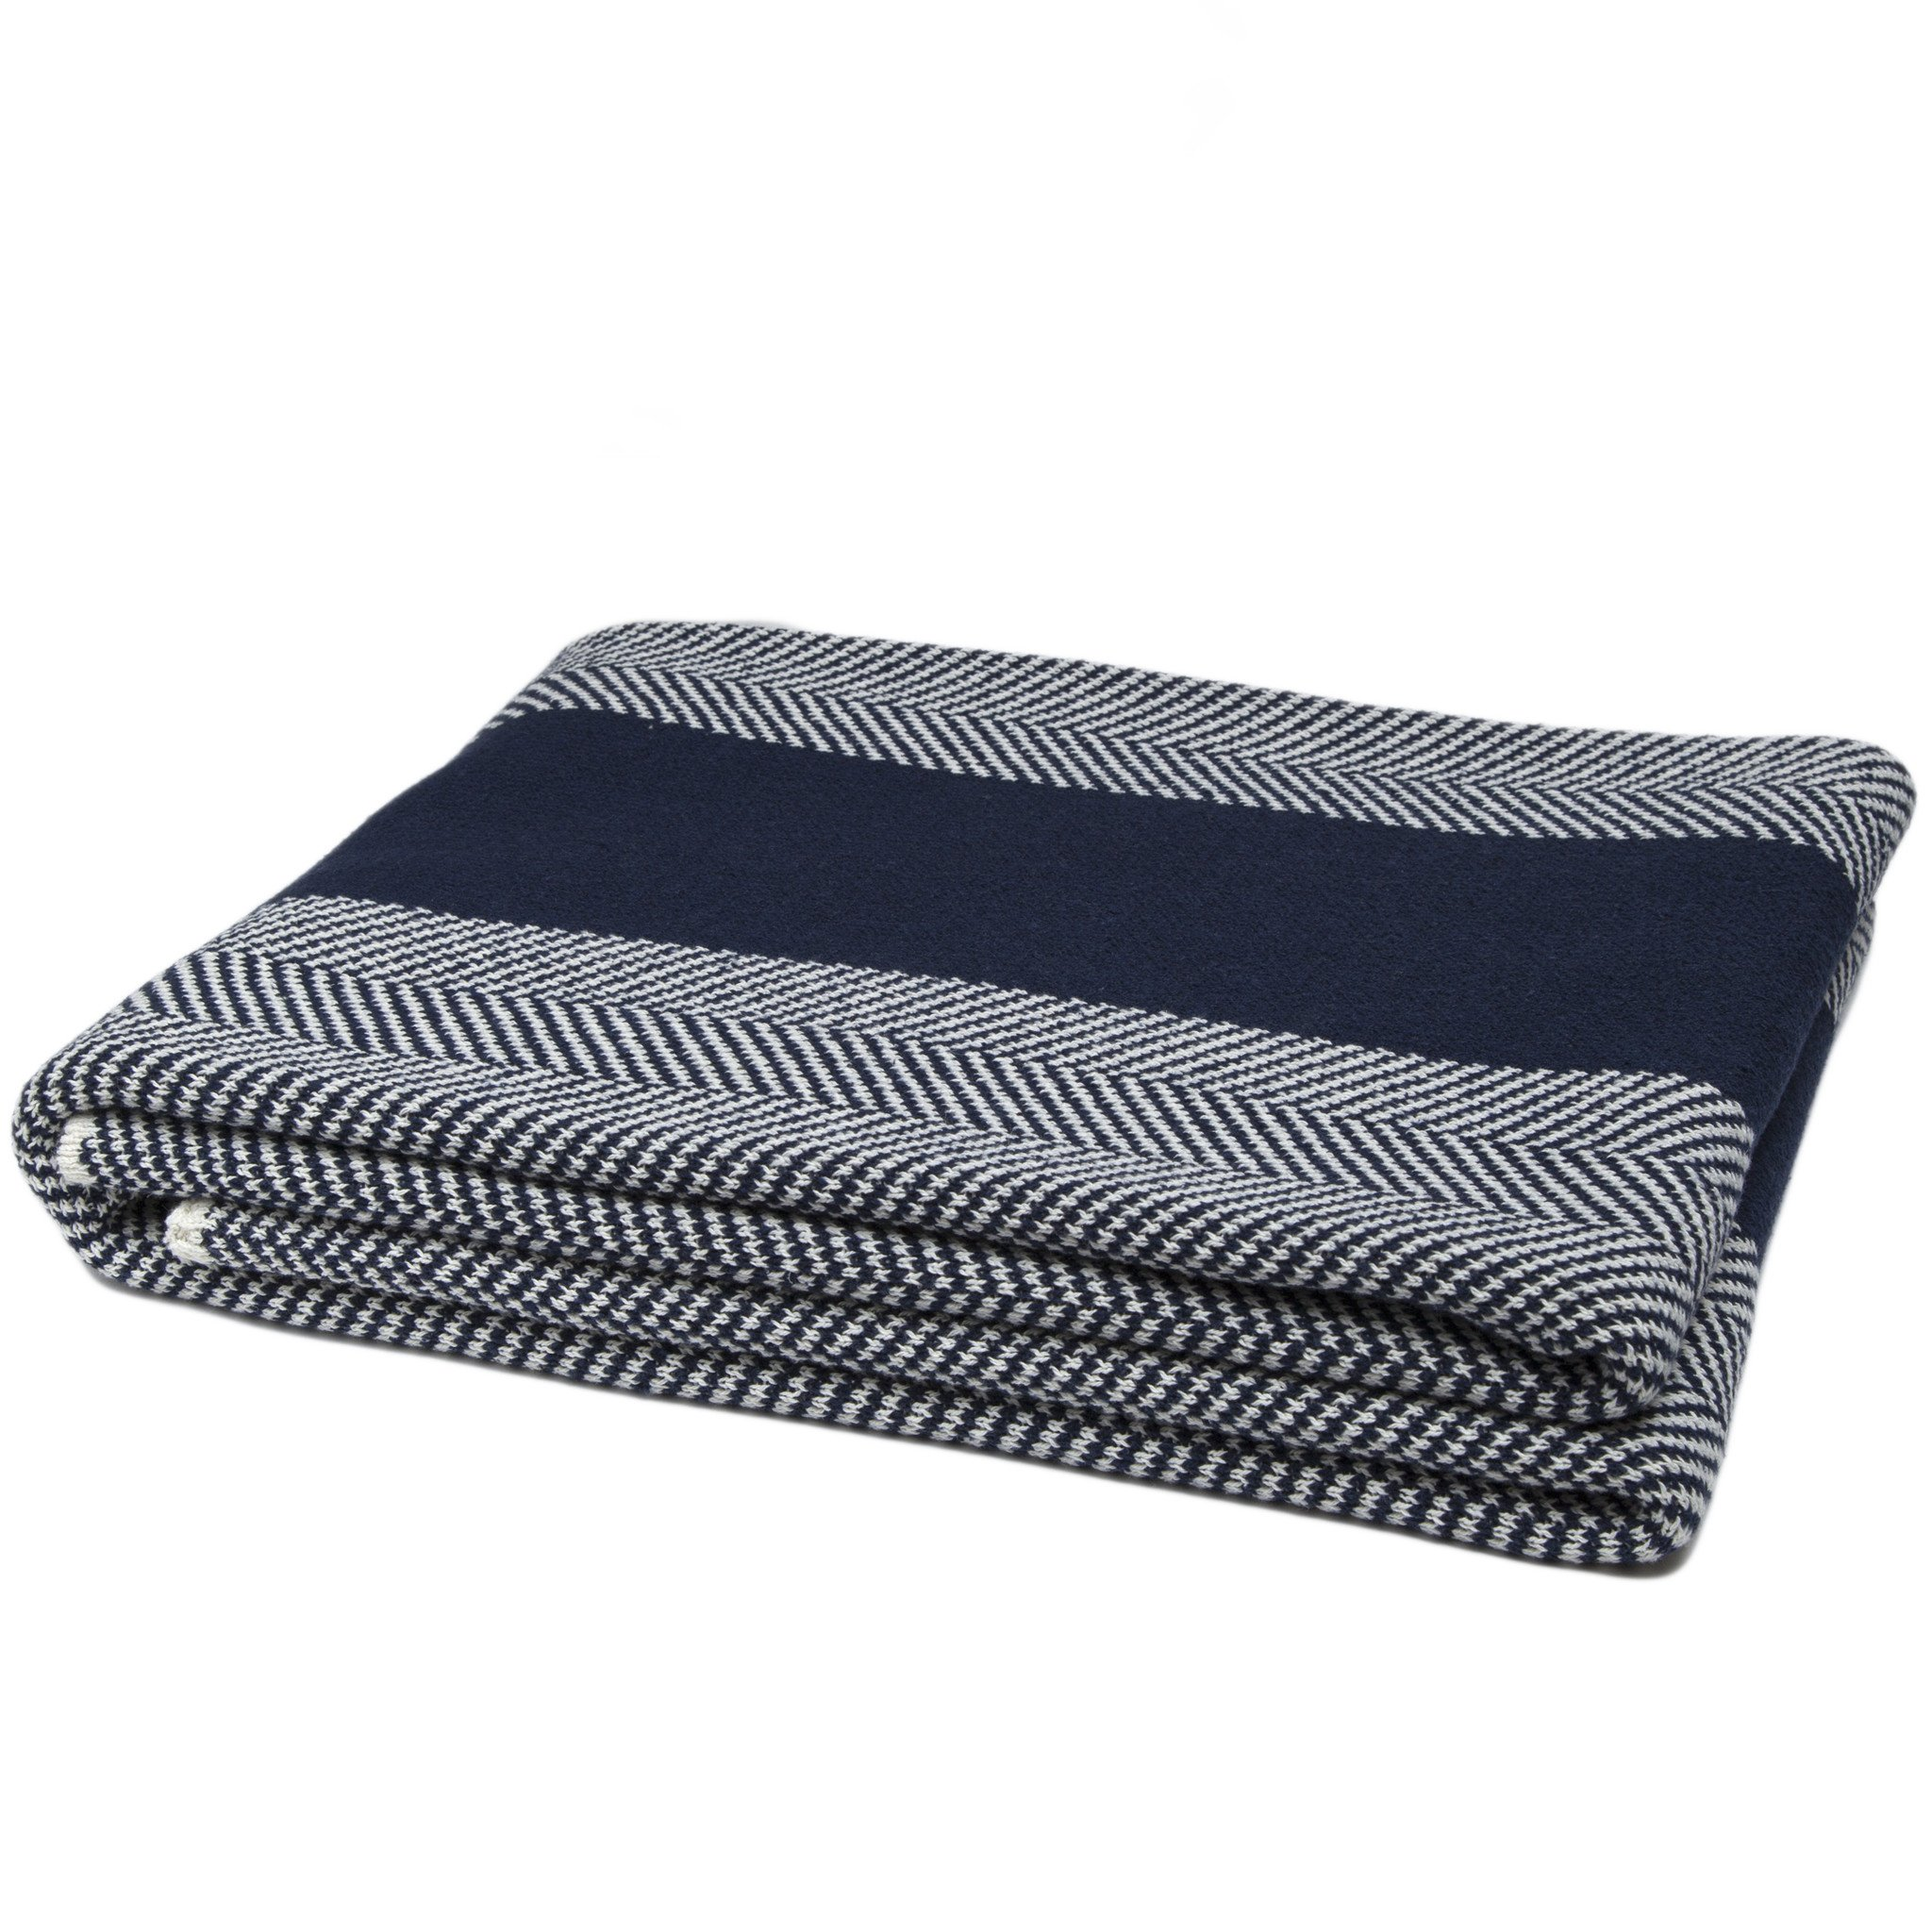 Navy Blue Herringbone Stripe Throw Blanket